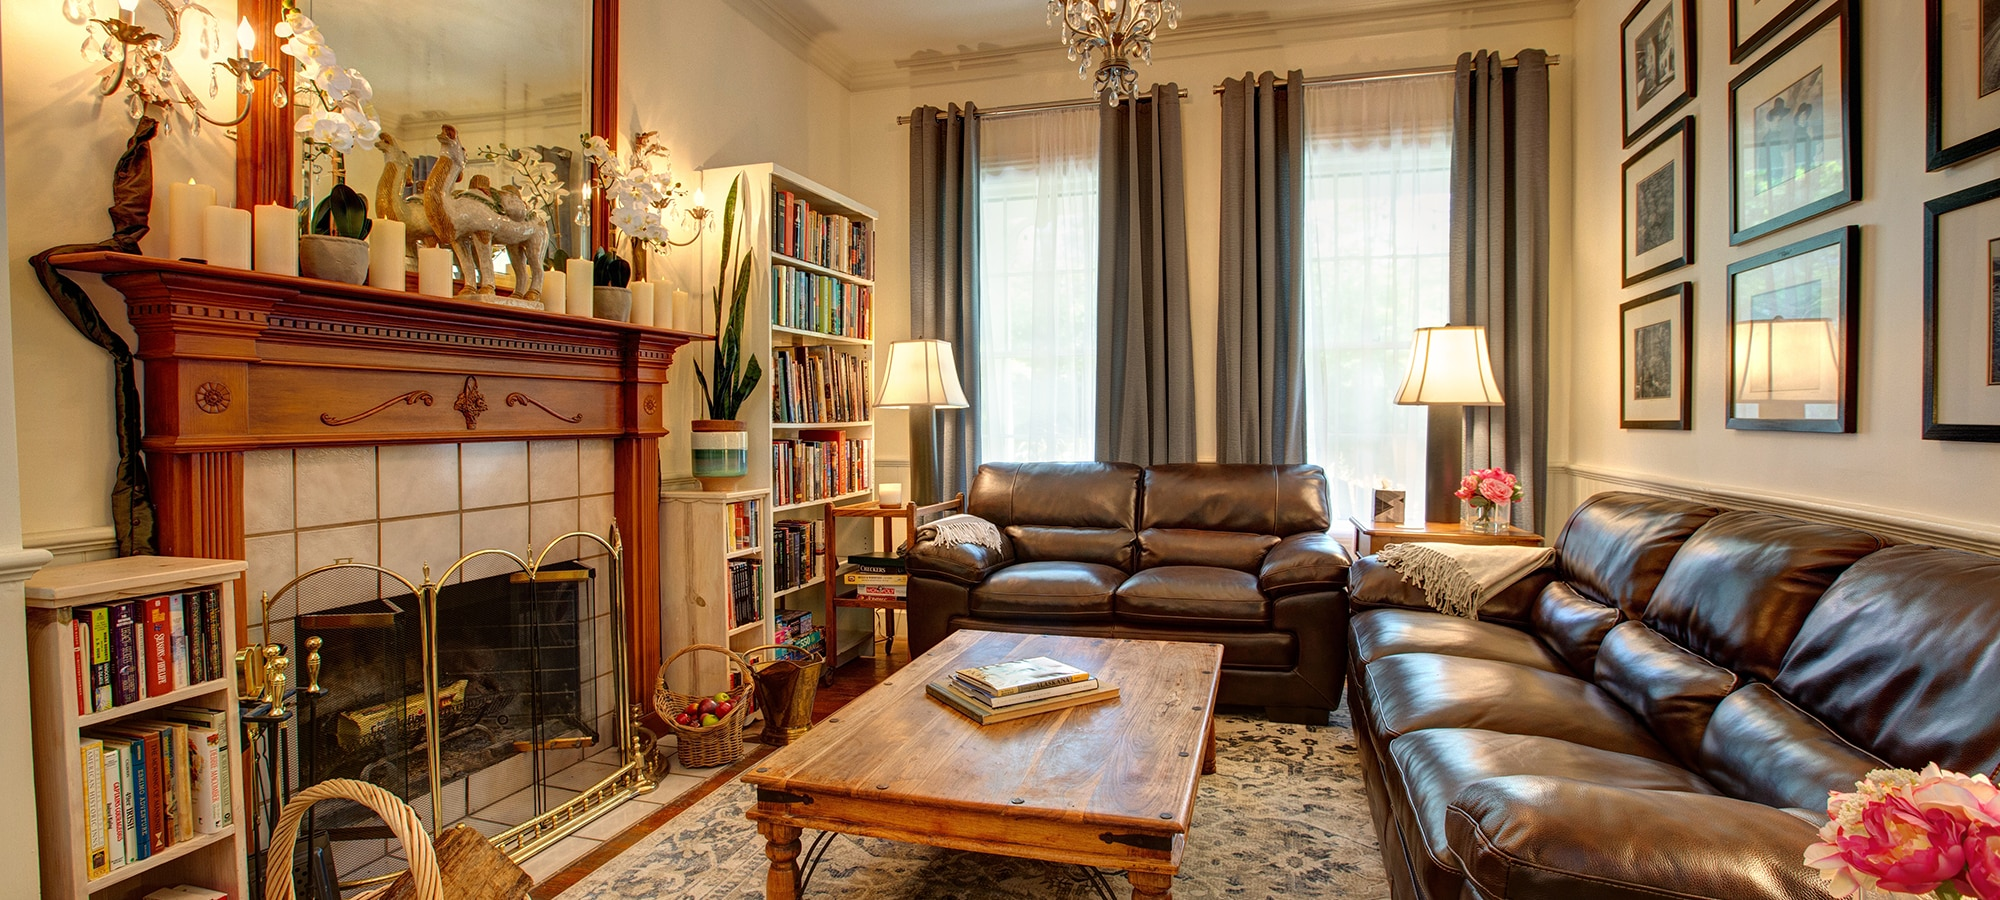 Side view of a social nook with love seat, couch, and fireplace. Many books fill cases flanking the fireplace and mantle.